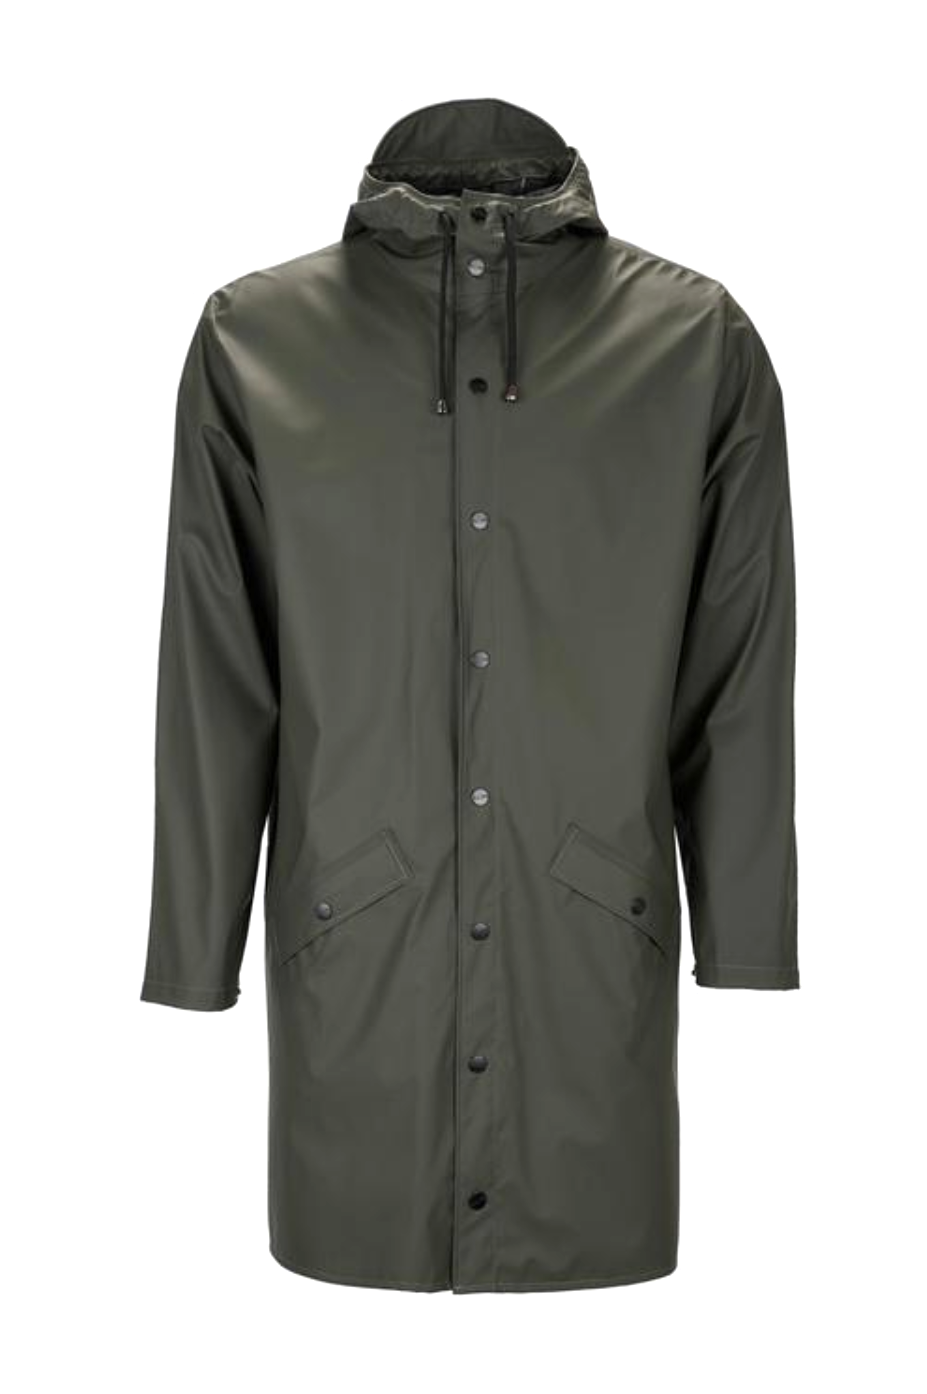 Green Long Rain Jacket